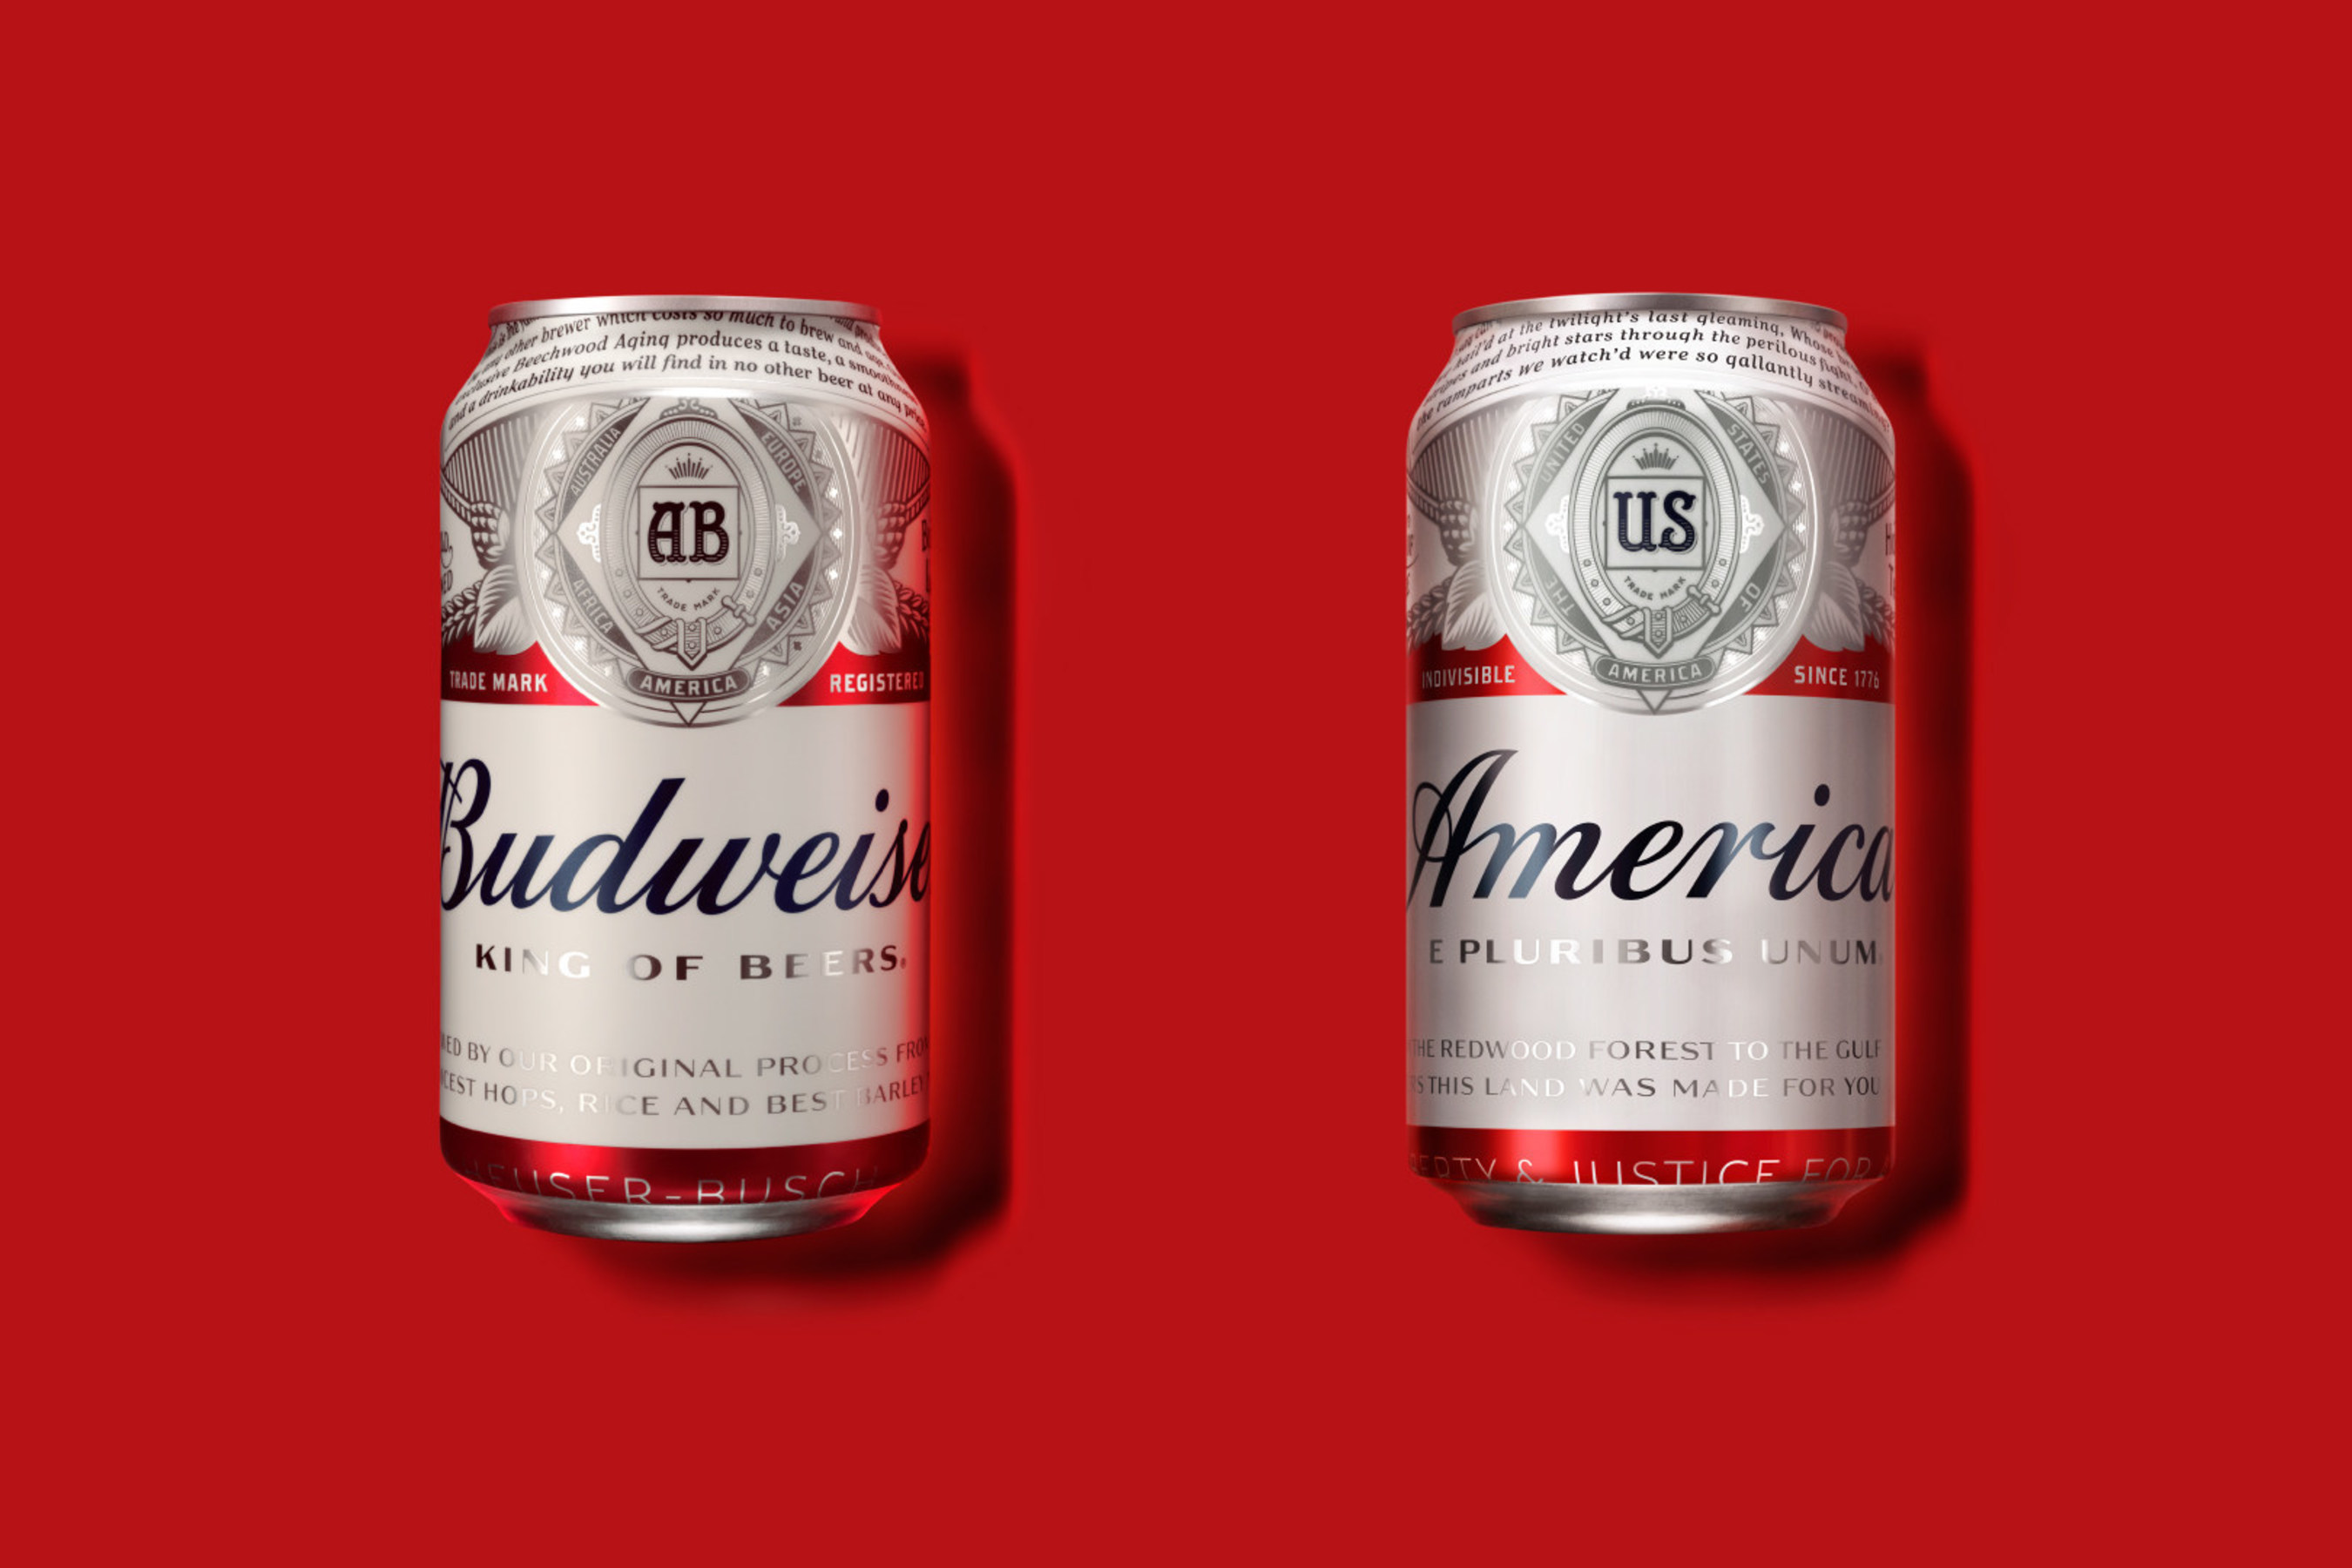 Budweiser Emblazons America on Cans and Bottles to kick off its Most Patriotic Summer Ever